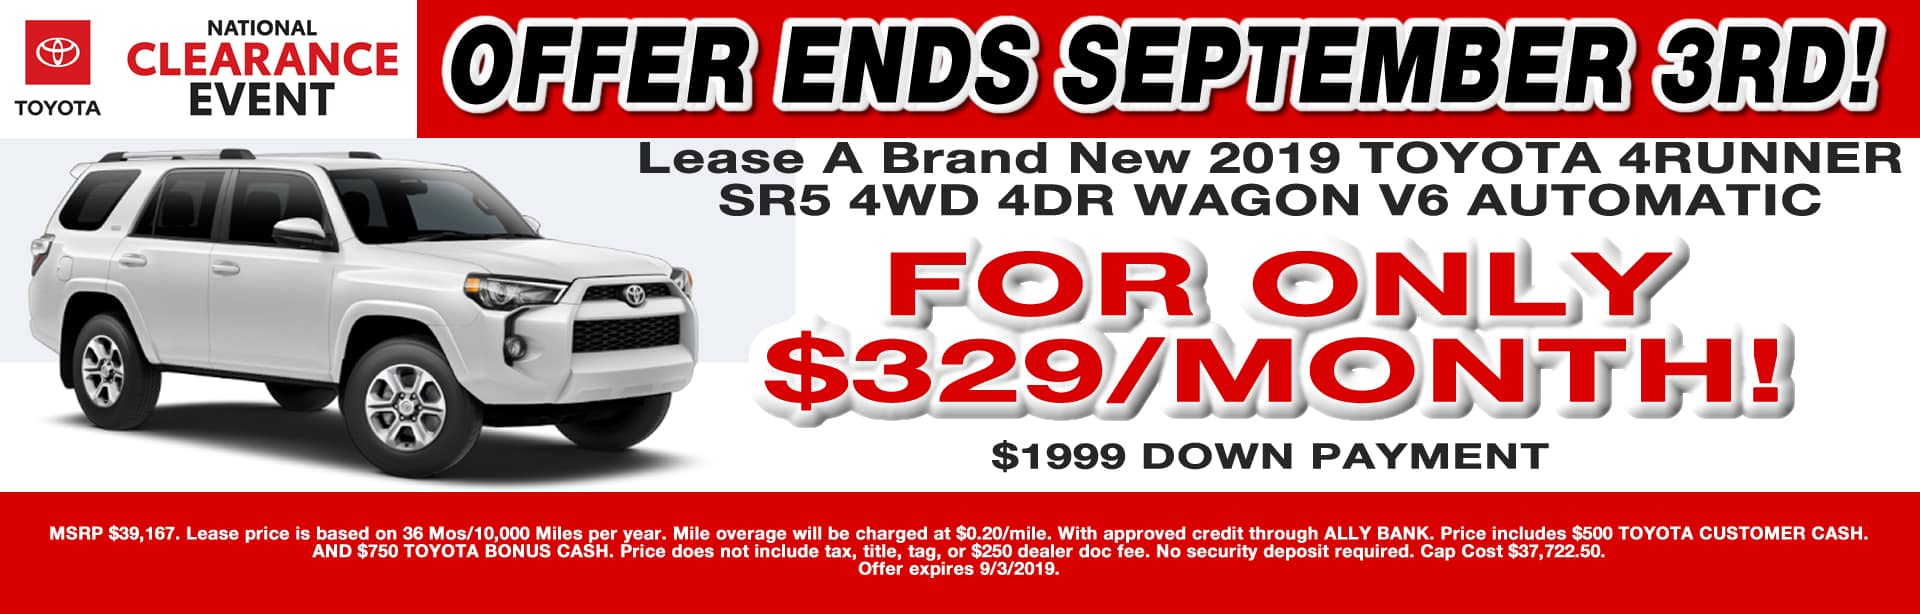 CAIN TOYOTA AUG2019 4RUNNER LEASE SPECIAL NORTH CANTON OHIO